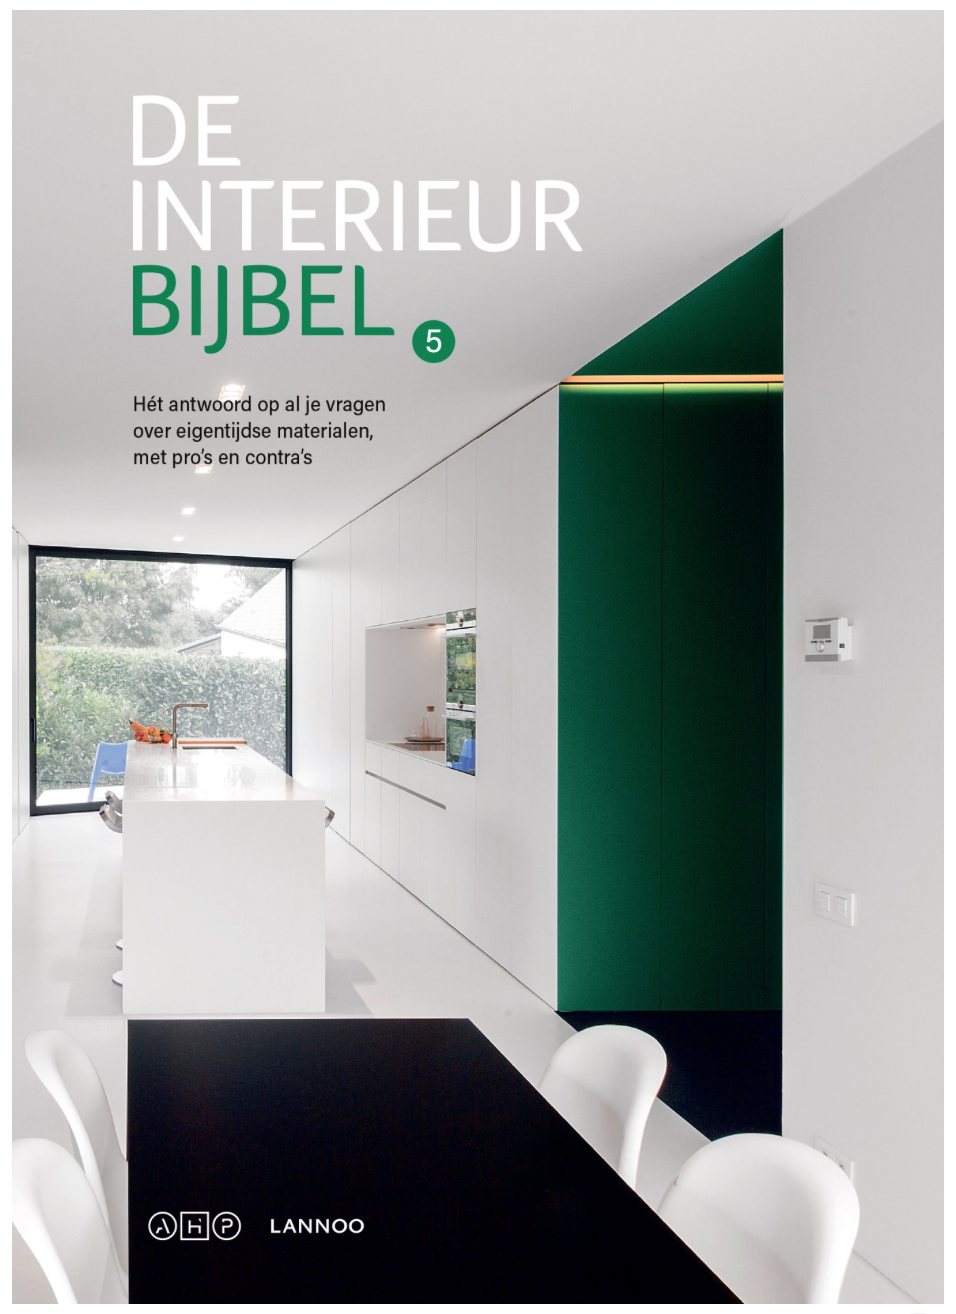 De Interieur Bijbel - 5th edition